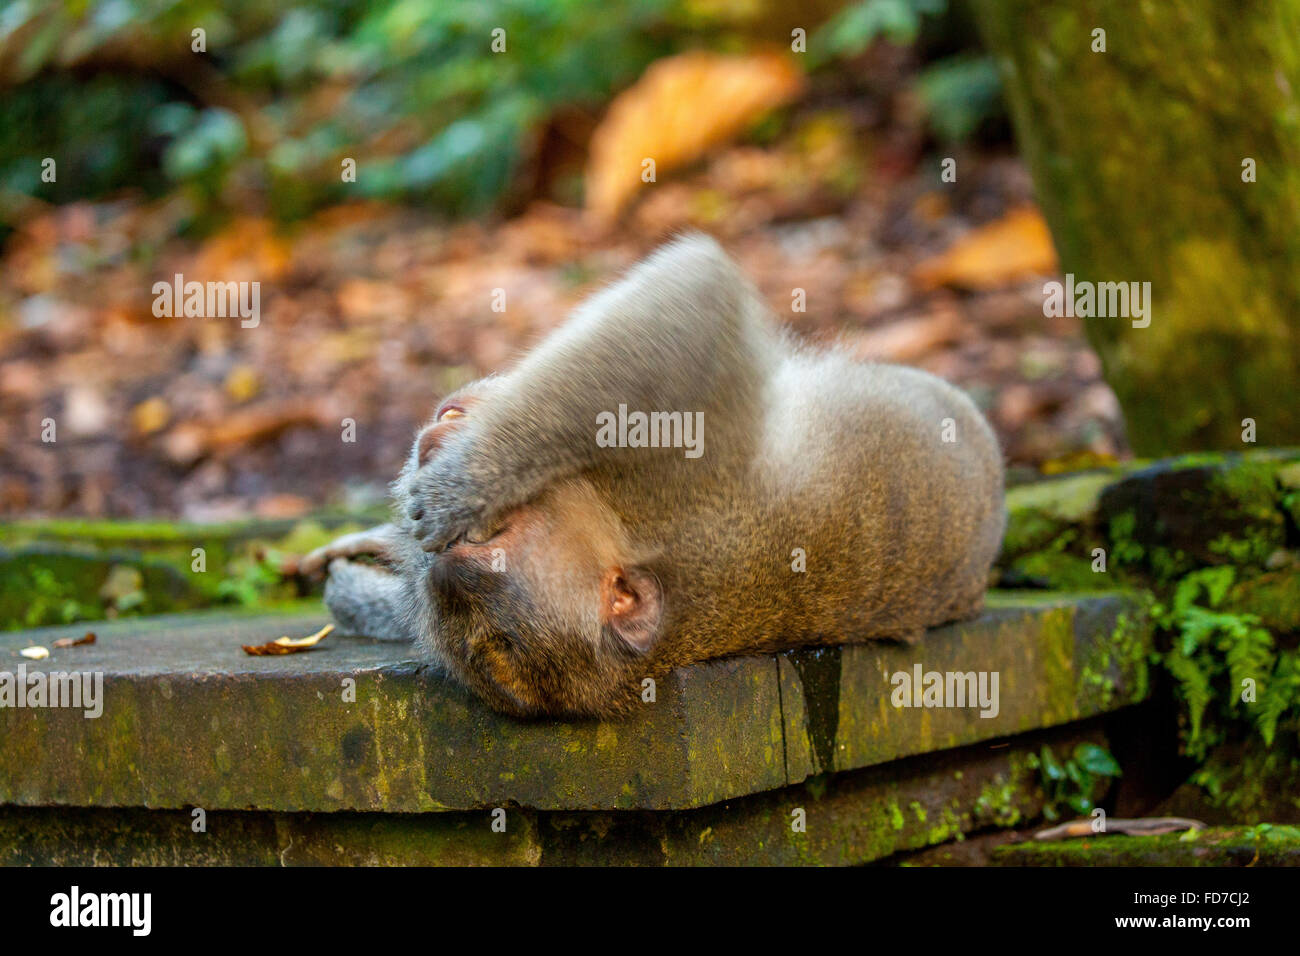 Long-tailed macaque (Macaca fascicularis), Monkey keeps your eyes, monkey lies on a stone wall, Ubud Monkey Forest, - Stock Image